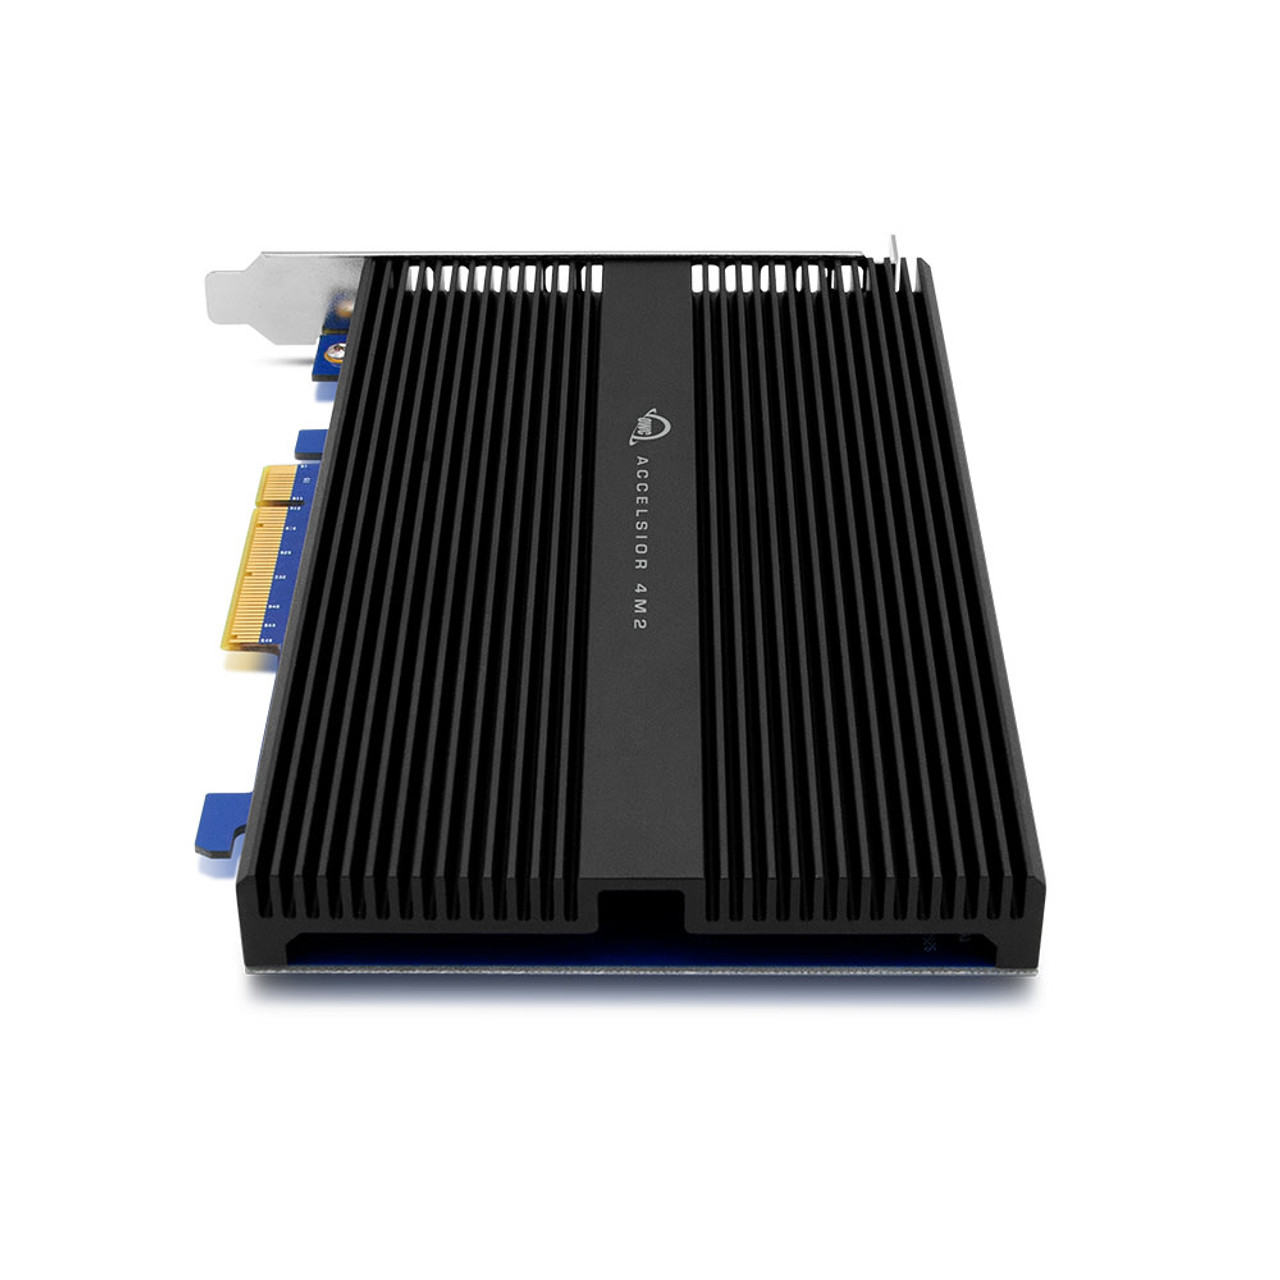 OWC 1.0TB Accelsior 4M2 High-Performance PCIe M.2 NVMe SSD Adapter Card